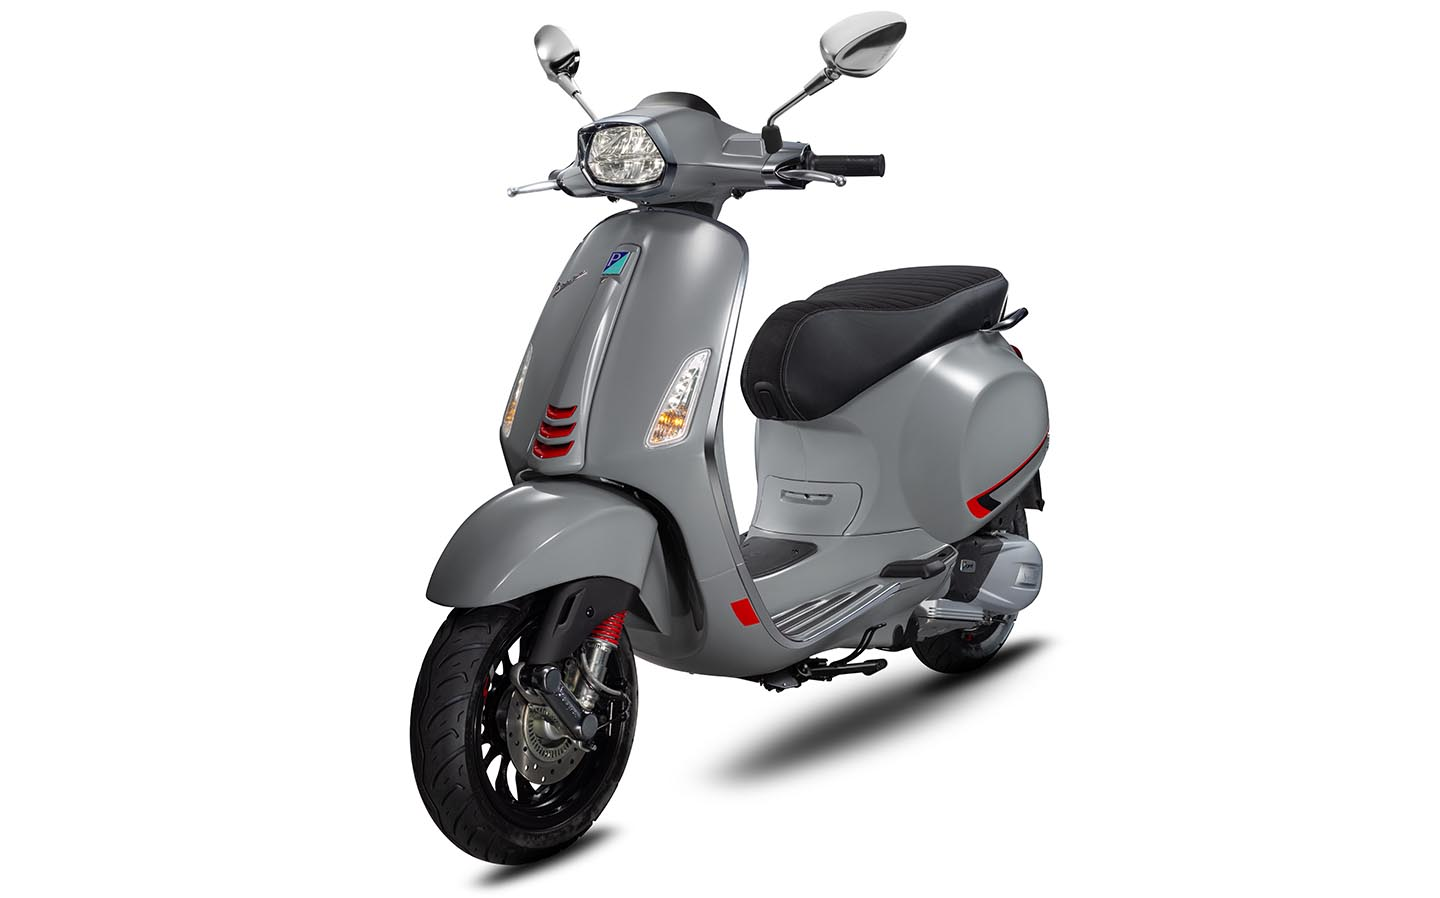 vespa-capture-one-catalog44452.jpg